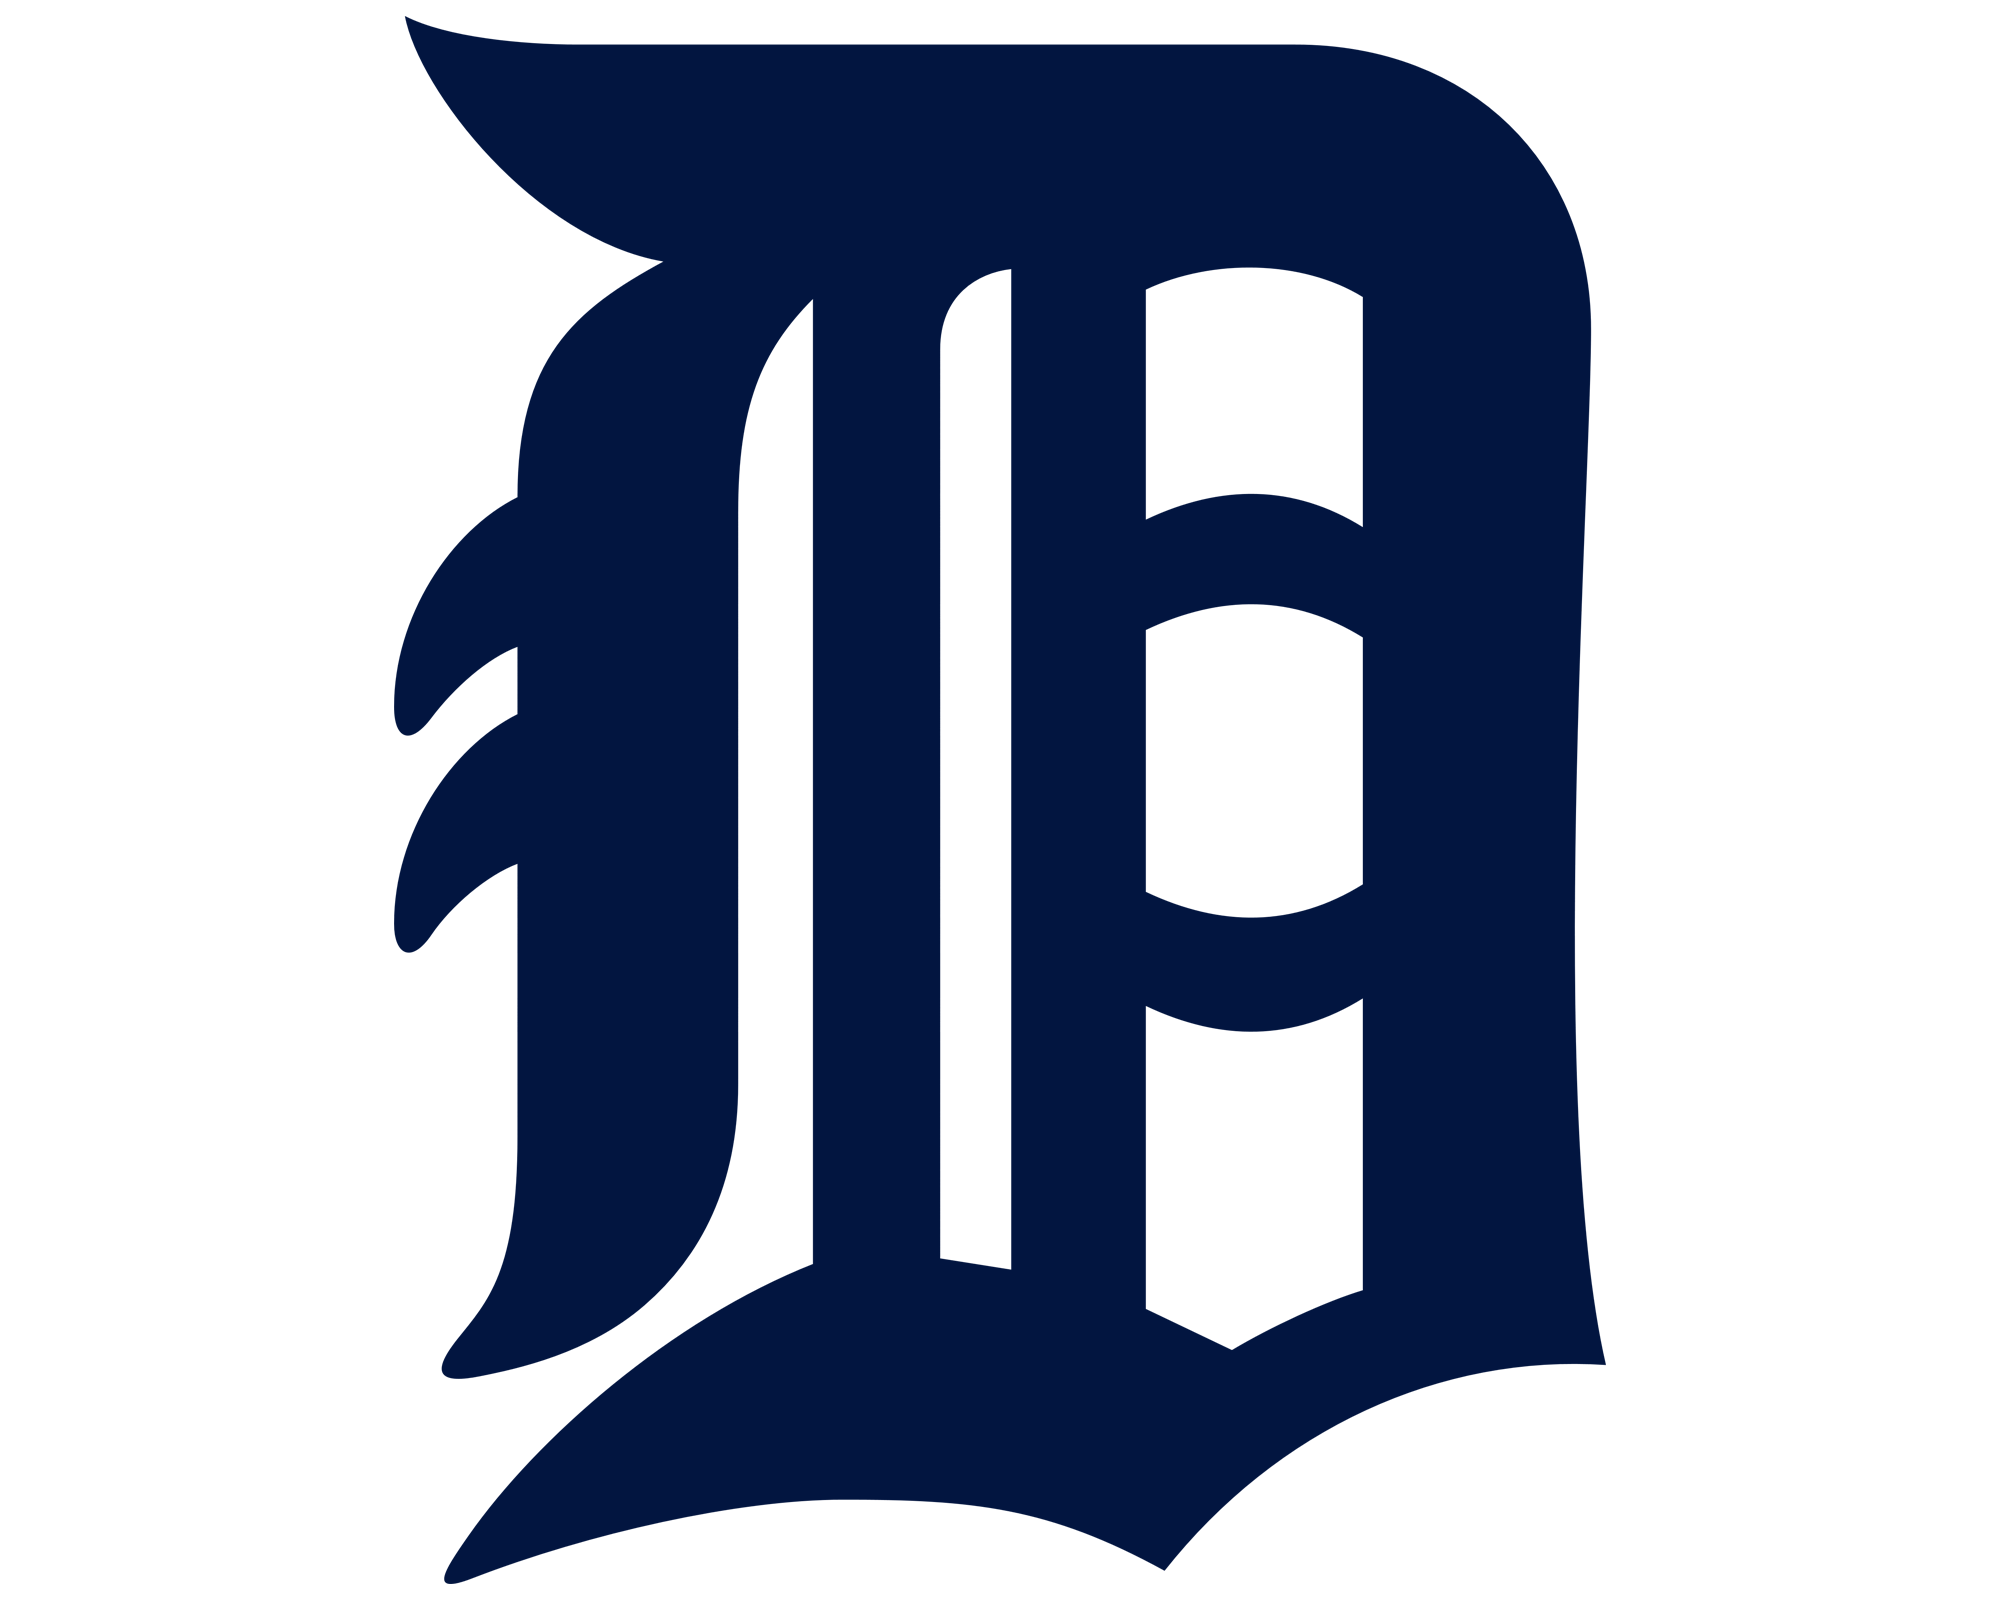 Detroit Tigers Logo - Detroit Tigers Logo, Detroit Tigers Symbol, Meaning, History and ...